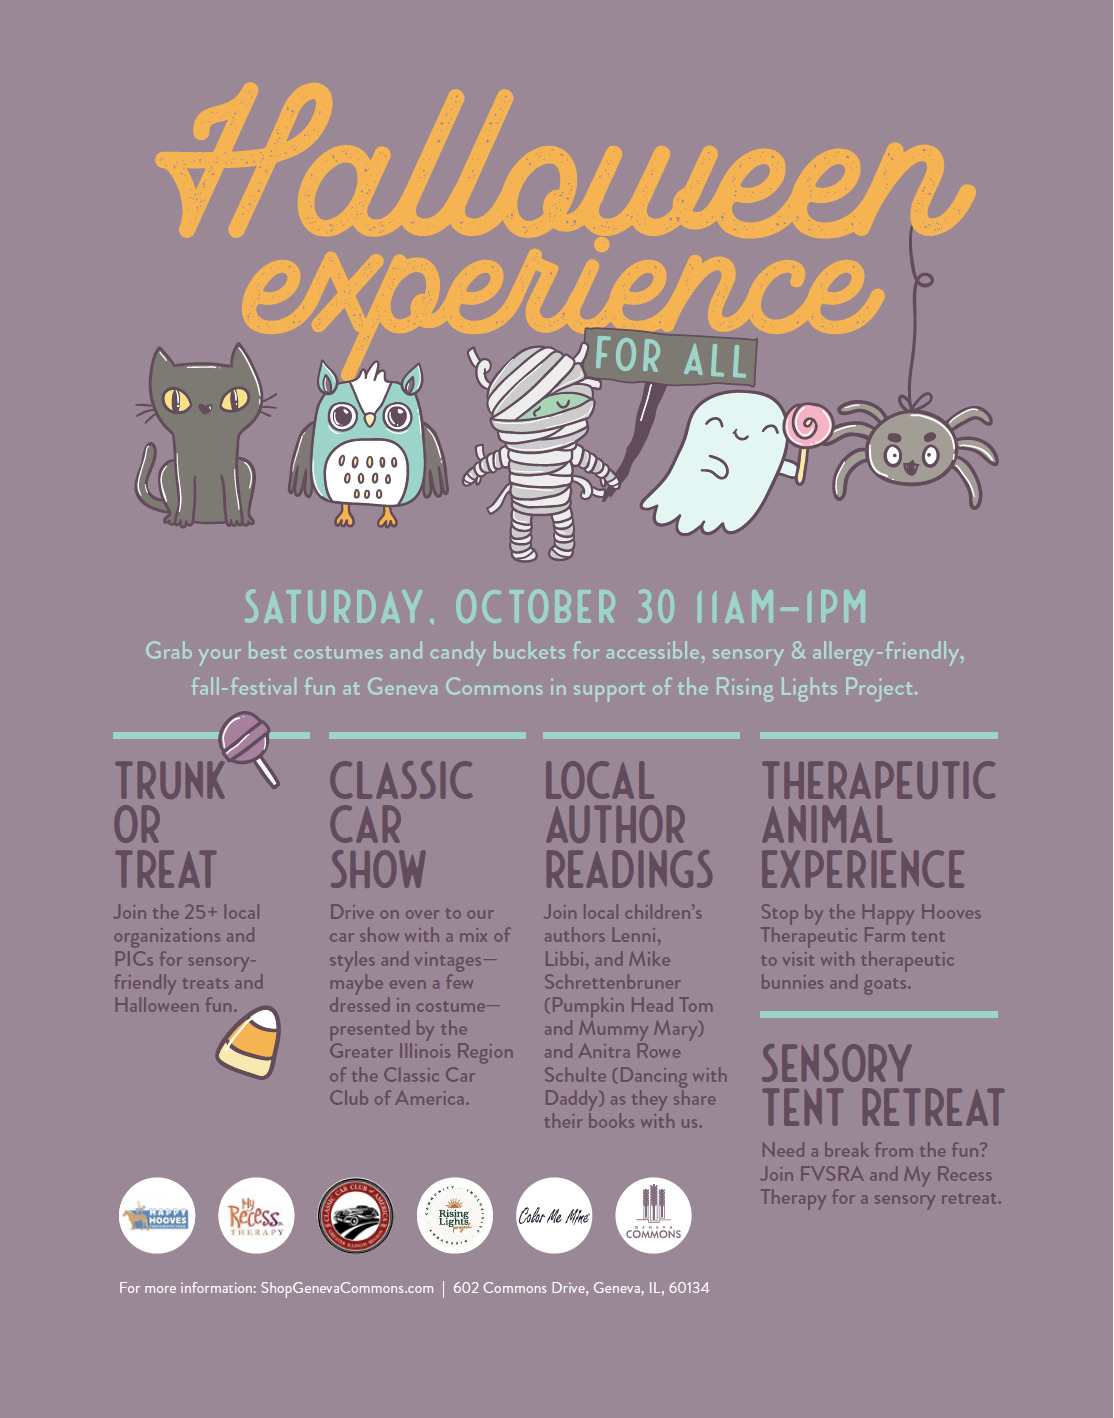 Join Us for Our Halloween Experience!